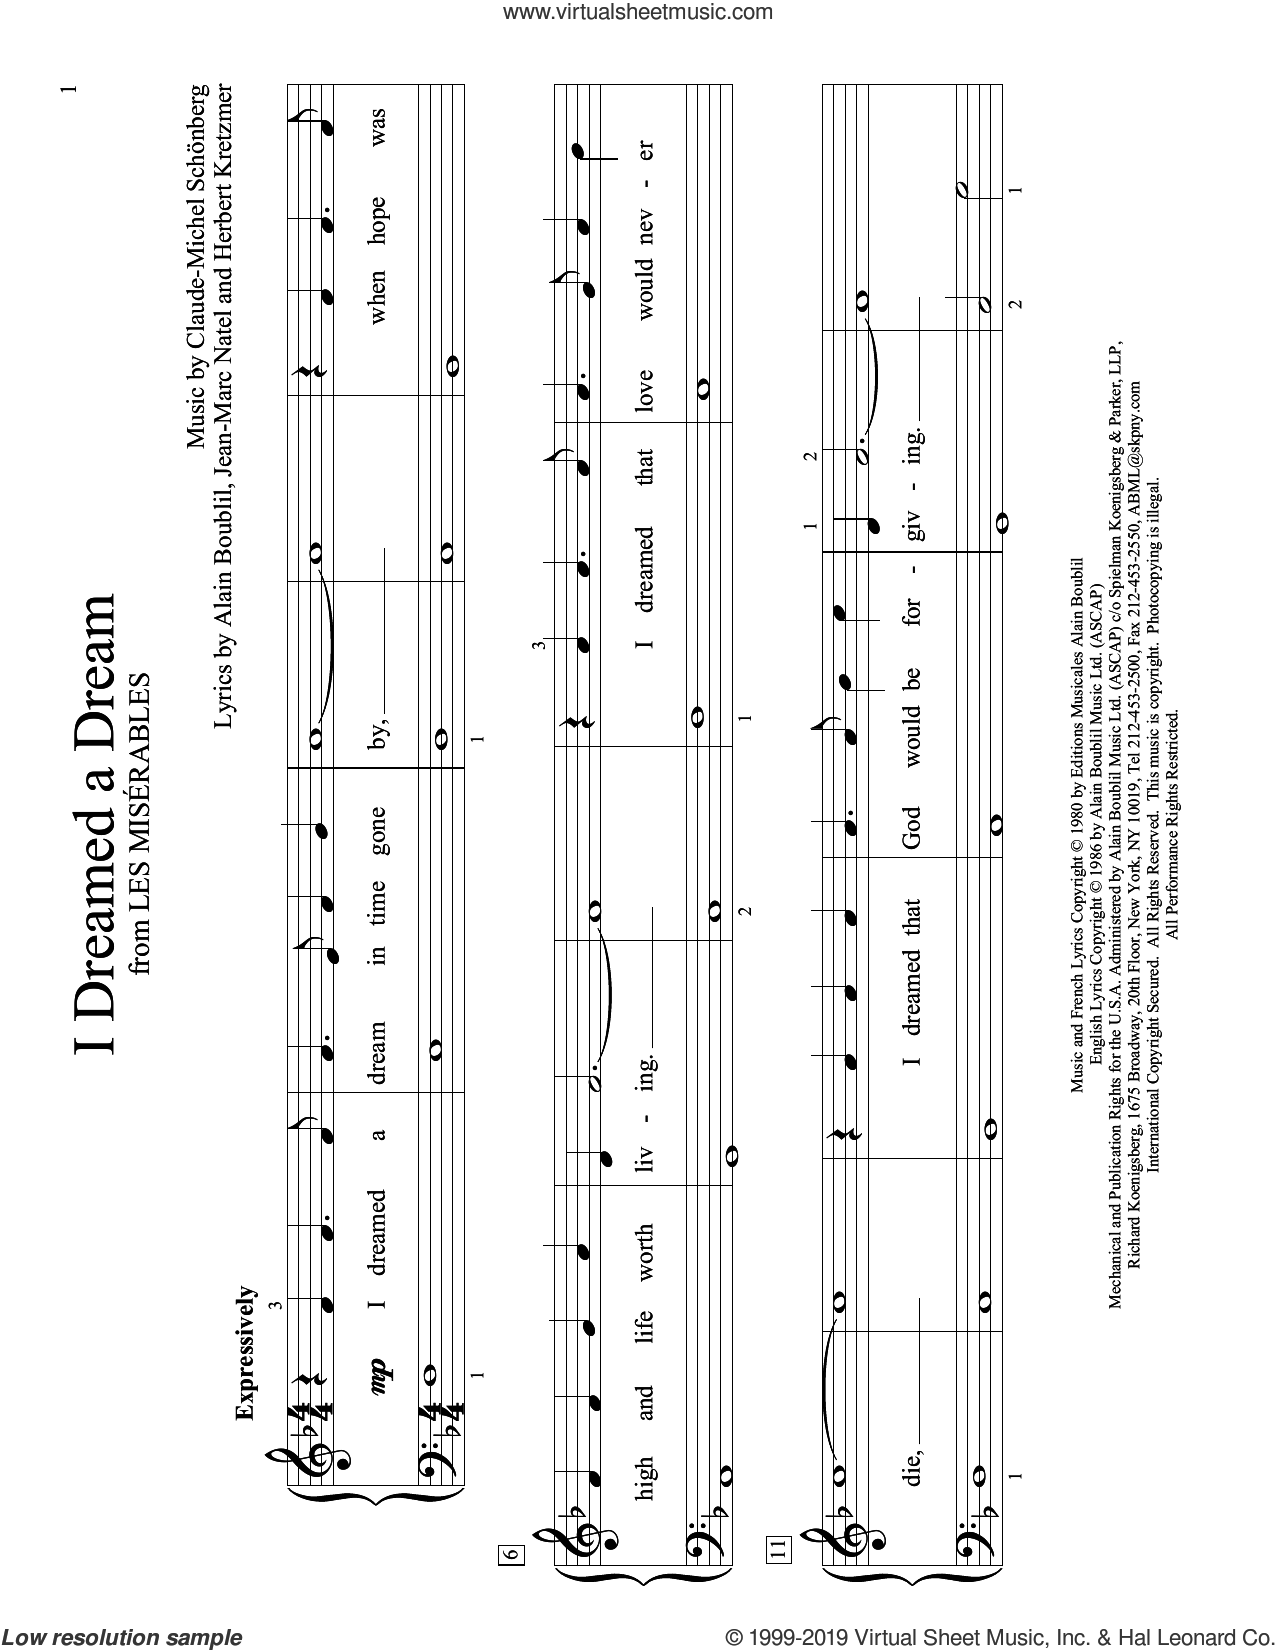 I Dreamed A Dream (from Les Miserables) (arr. Christopher Hussey) sheet music for piano solo (elementary) by Alain Boublil, Christopher Hussey, Glee Cast feat. Idina Menzel, Susan Boyle, Claude-Michel Schonberg, Herbert Kretzmer and Jean-Marc Natel, beginner piano (elementary)